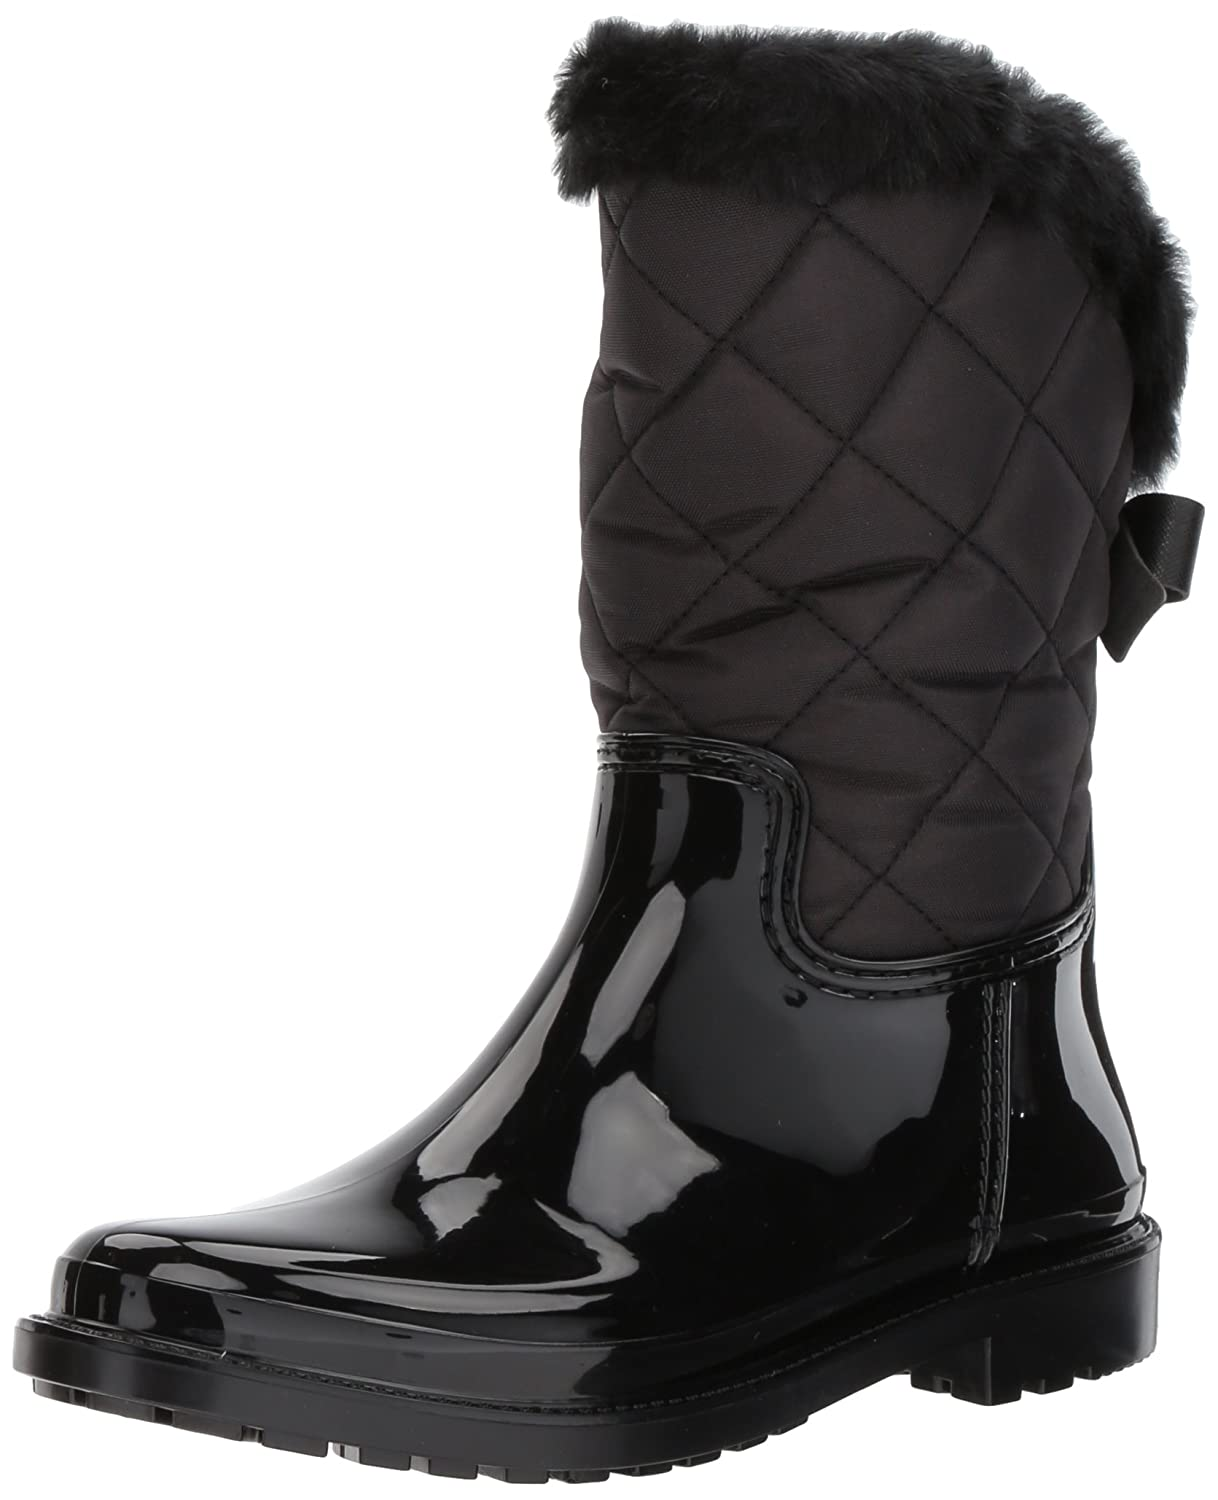 Kate Spade New York Women's Reid Snow Boot S3210008SYRB9V